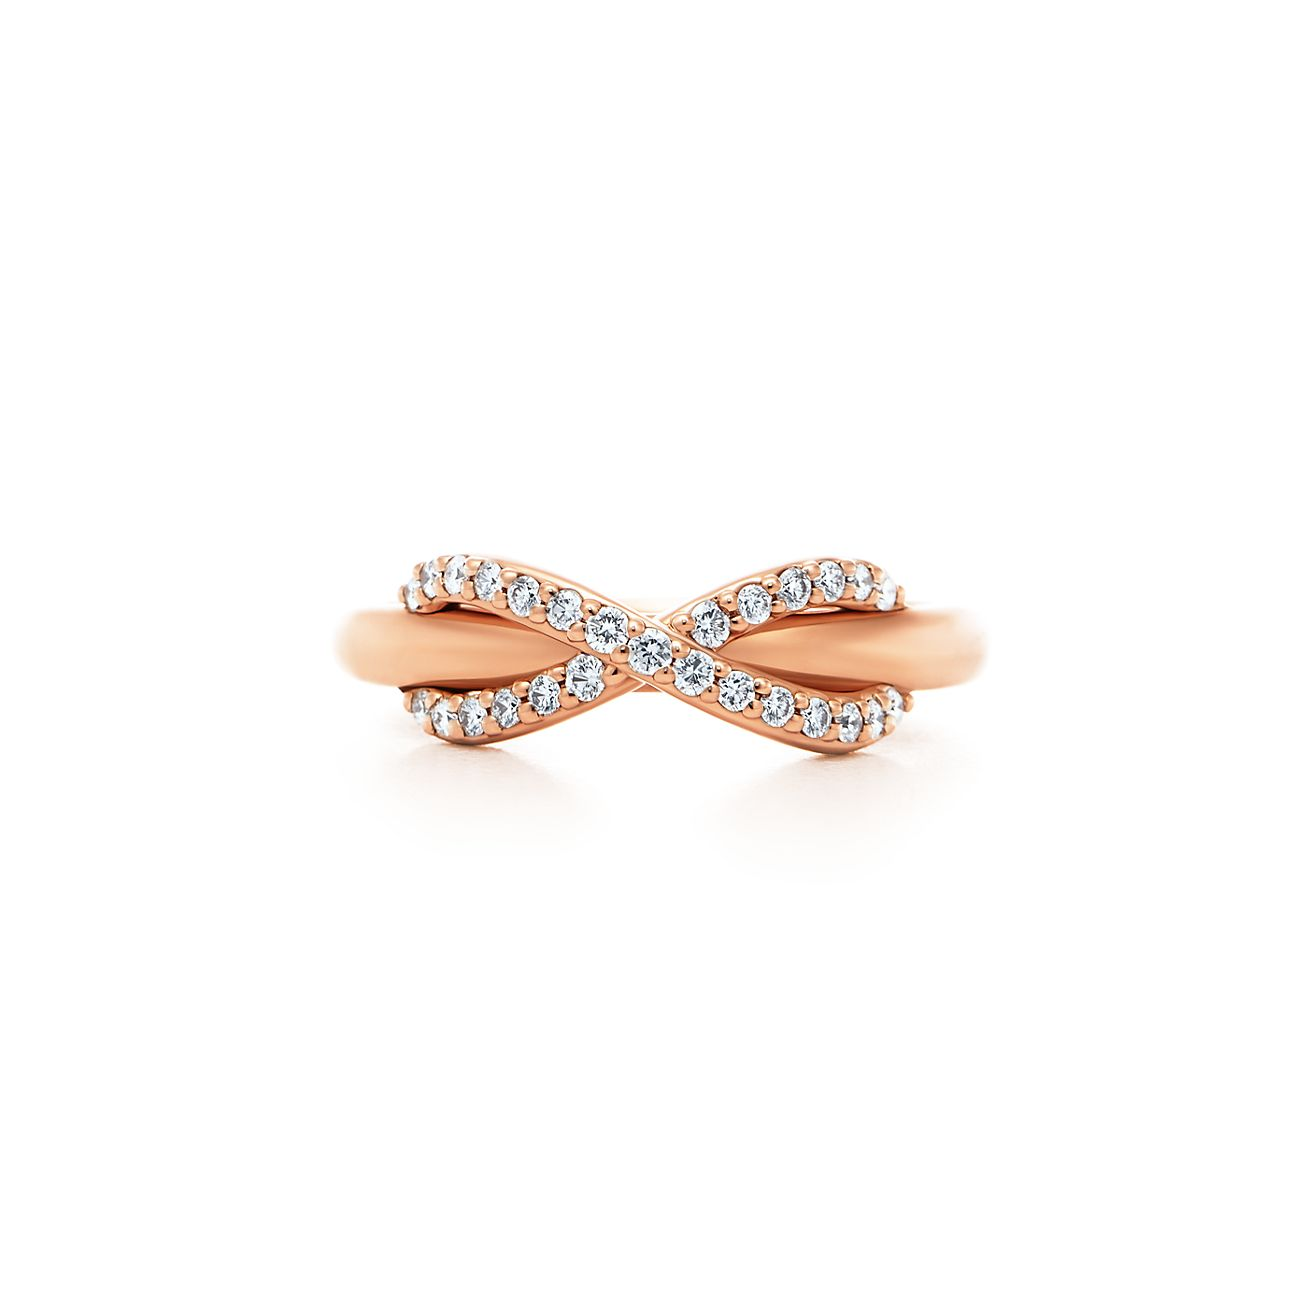 Tiffany Infinity Ring In 18k Rose Gold With Diamonds Tiffany Co